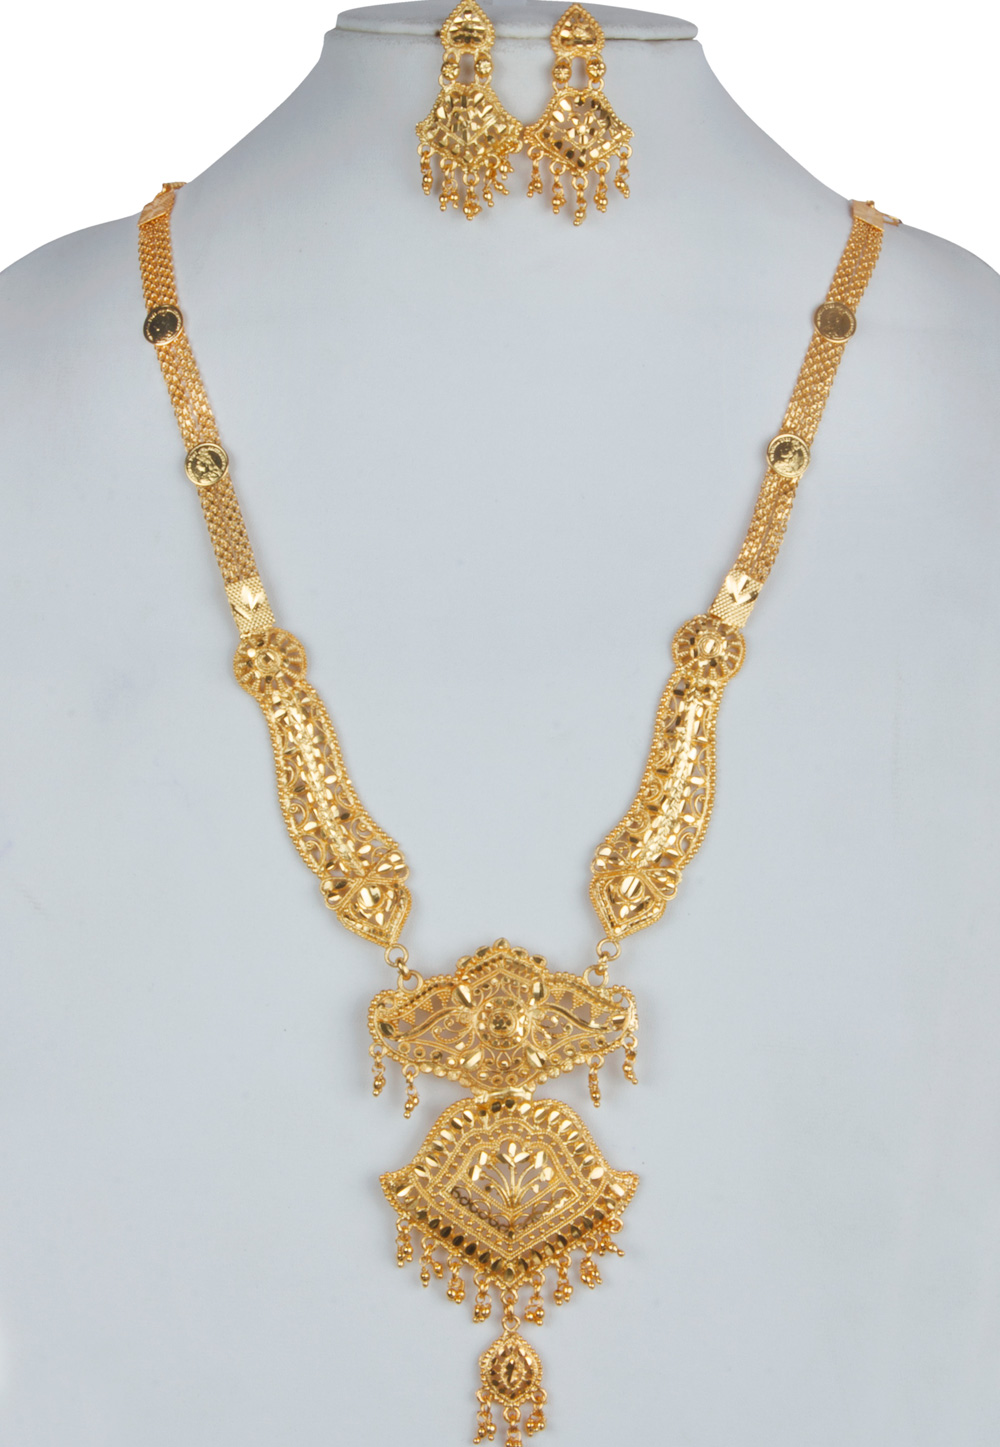 Golden Alloy Long Necklace With Earrings 157108